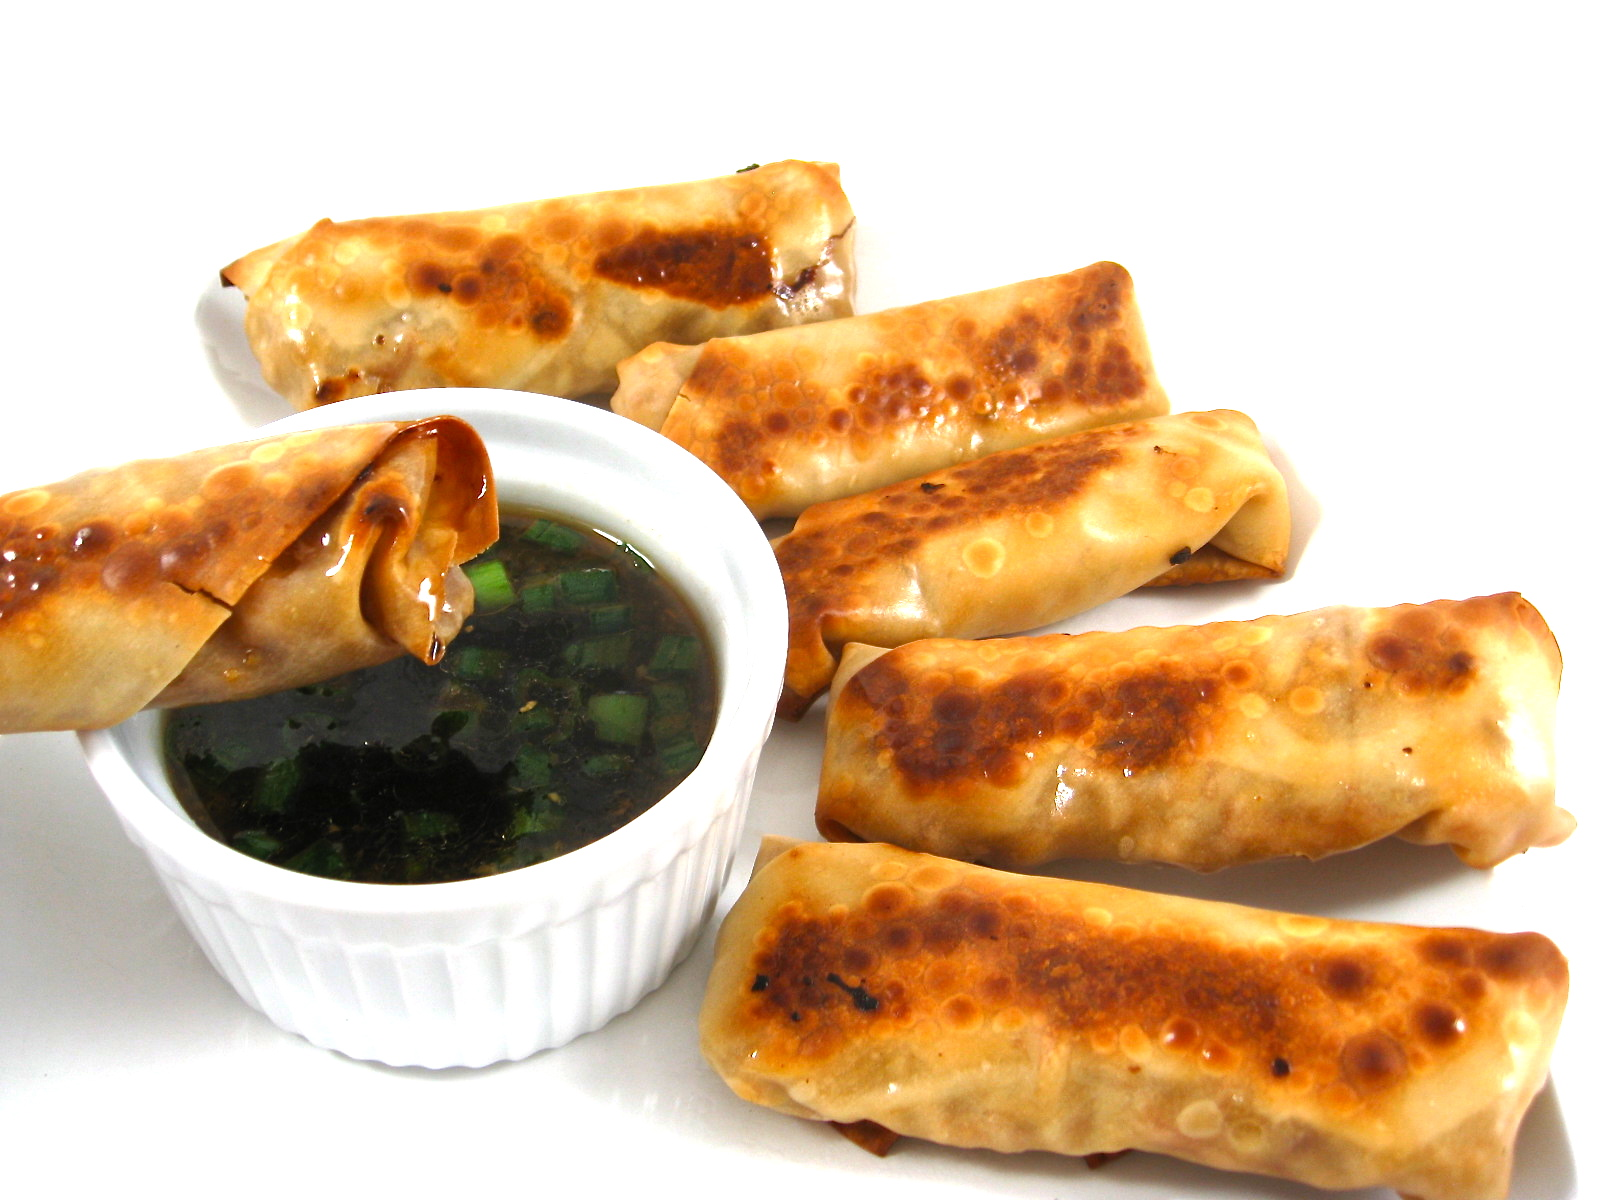 Skinny Baked Vegetarian Egg Rolls With Peanut Sauce By Skinny Kitchen Atfoodblogs